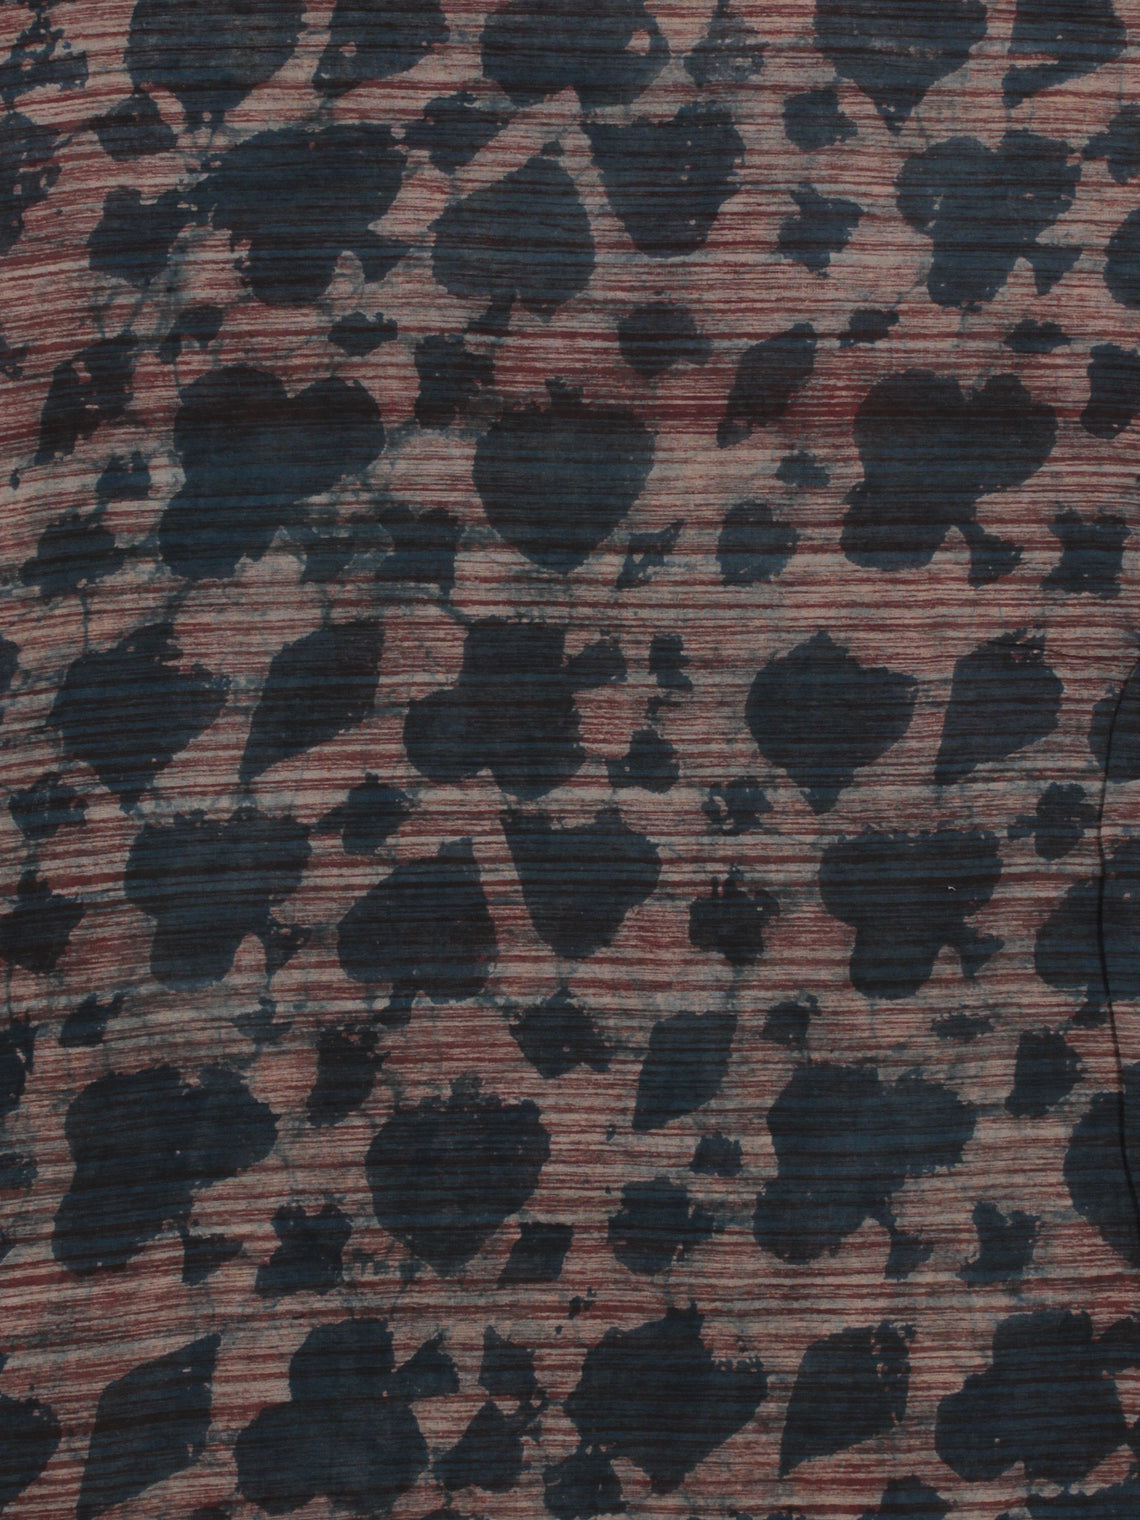 Grey Ivory Maroon Hand Block Printed Cotton Fabric Per Meter - F001F785